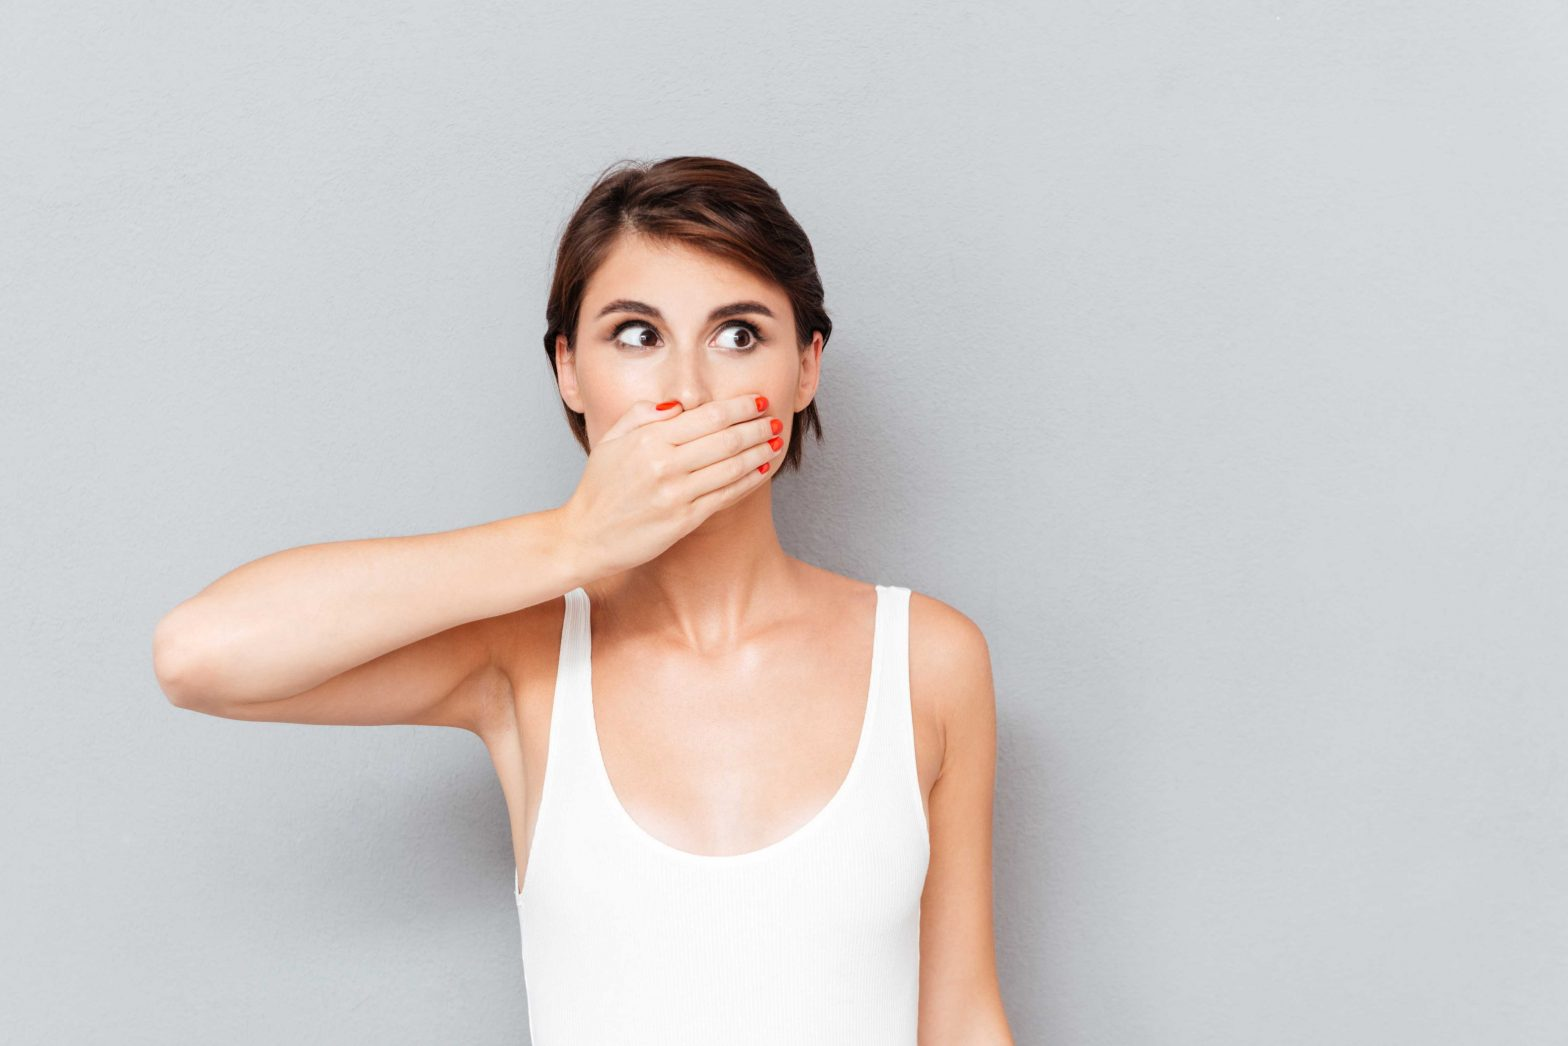 woman covering mouth with one hand